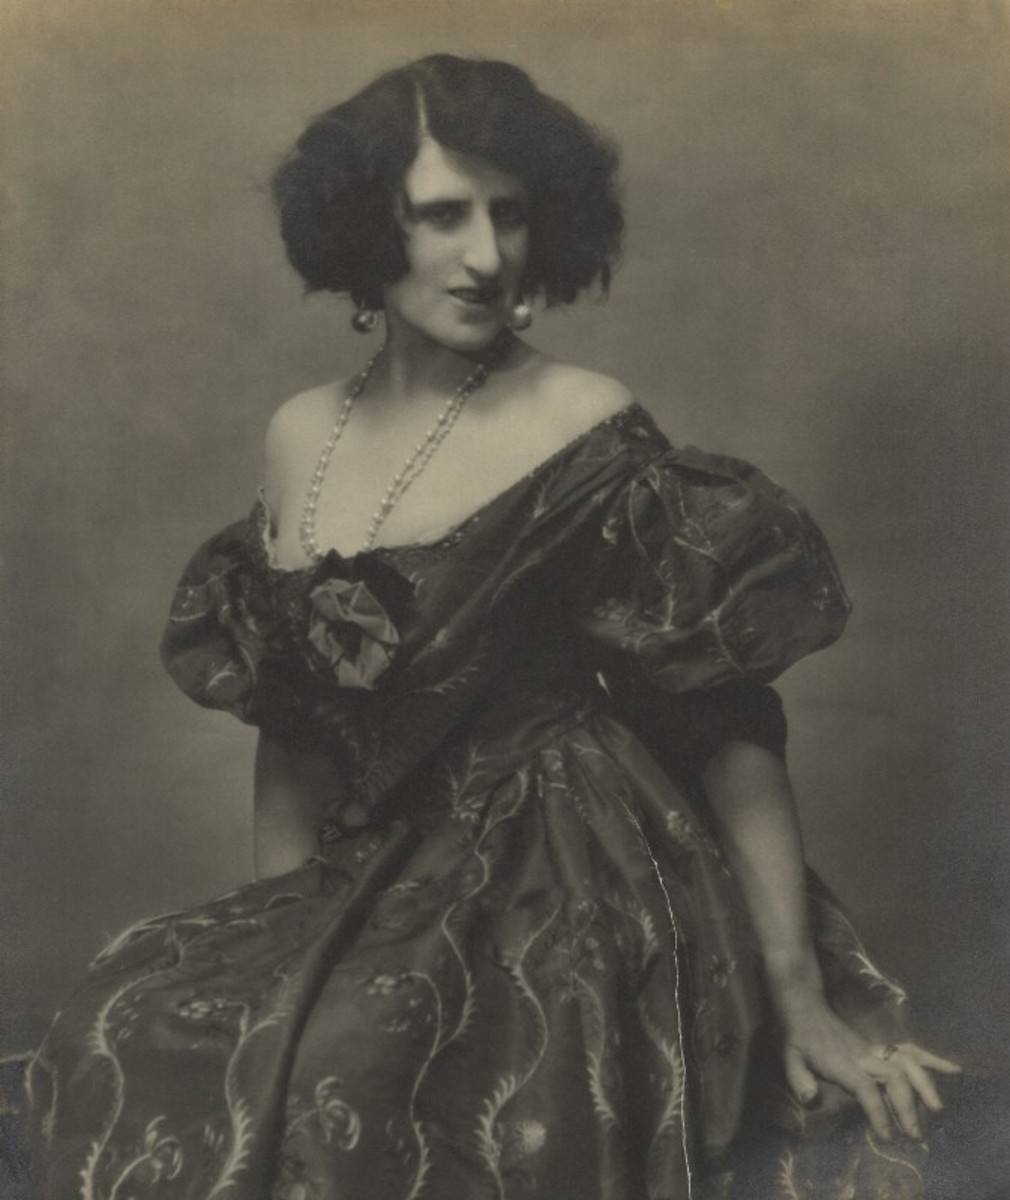 Lady Ottoline Morrell by Maurice Beck and Helen Macgregor chlorobromide print on black card, 1927